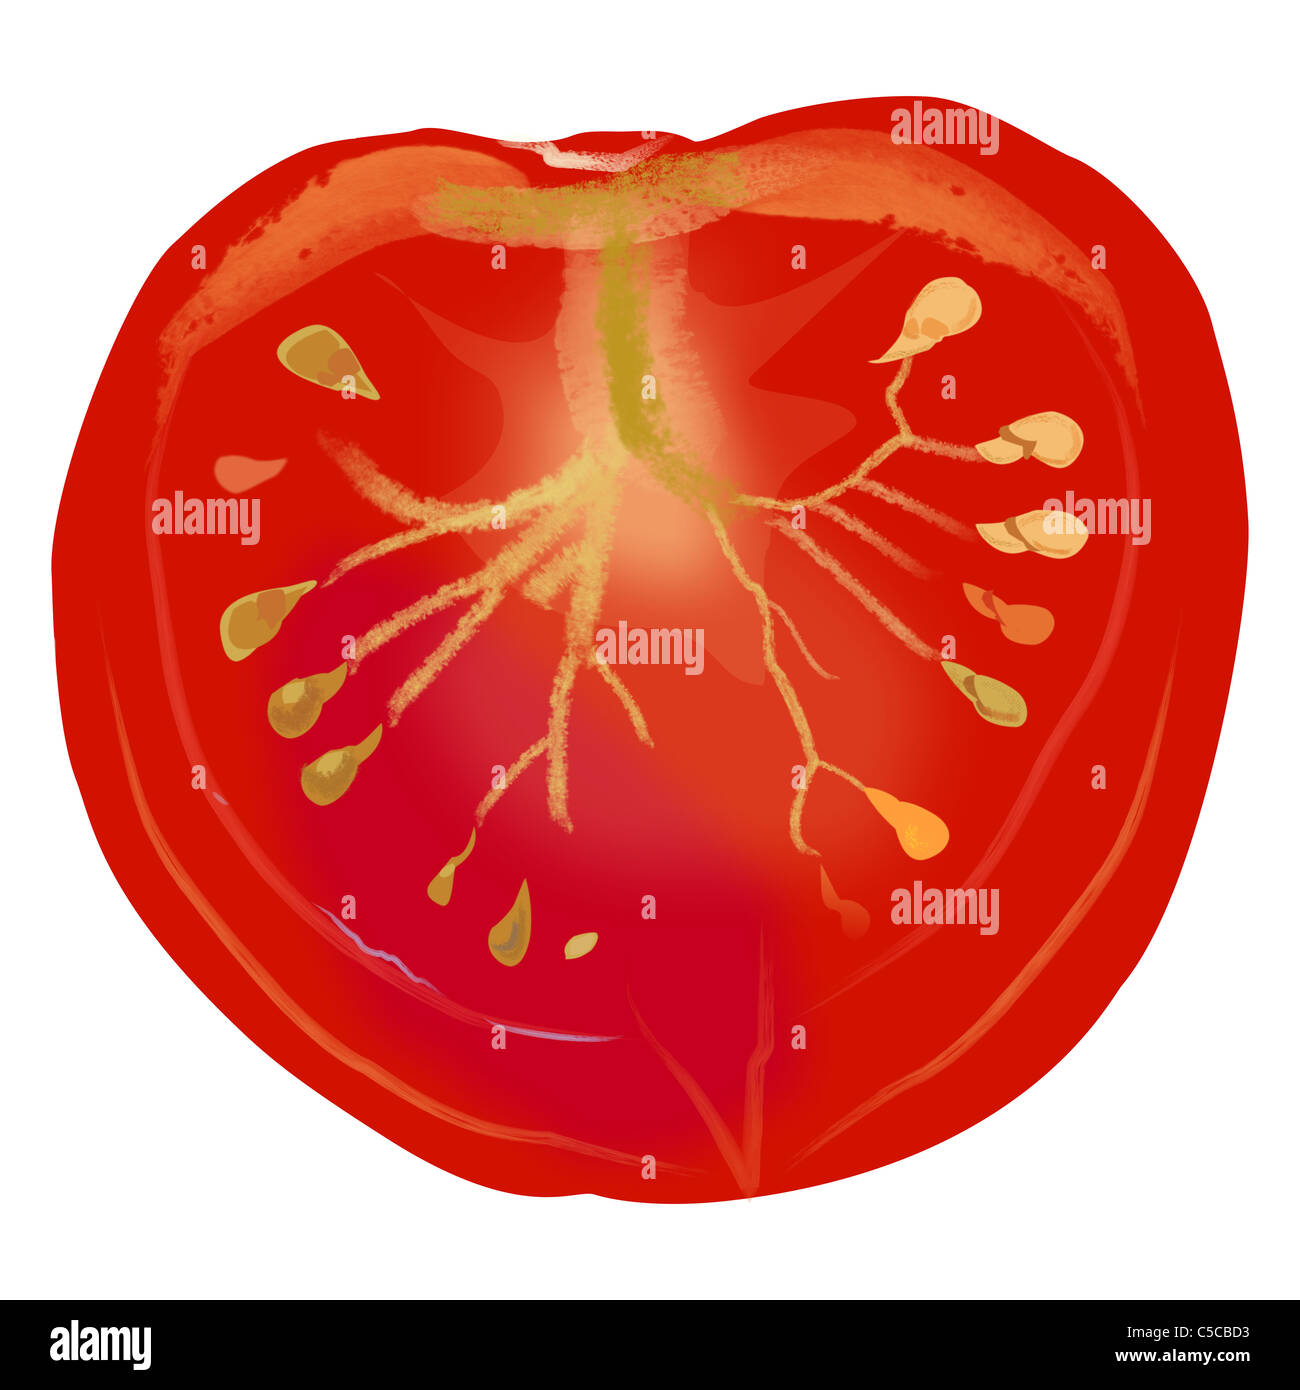 Drawing of a slice of tomato. - Stock Image